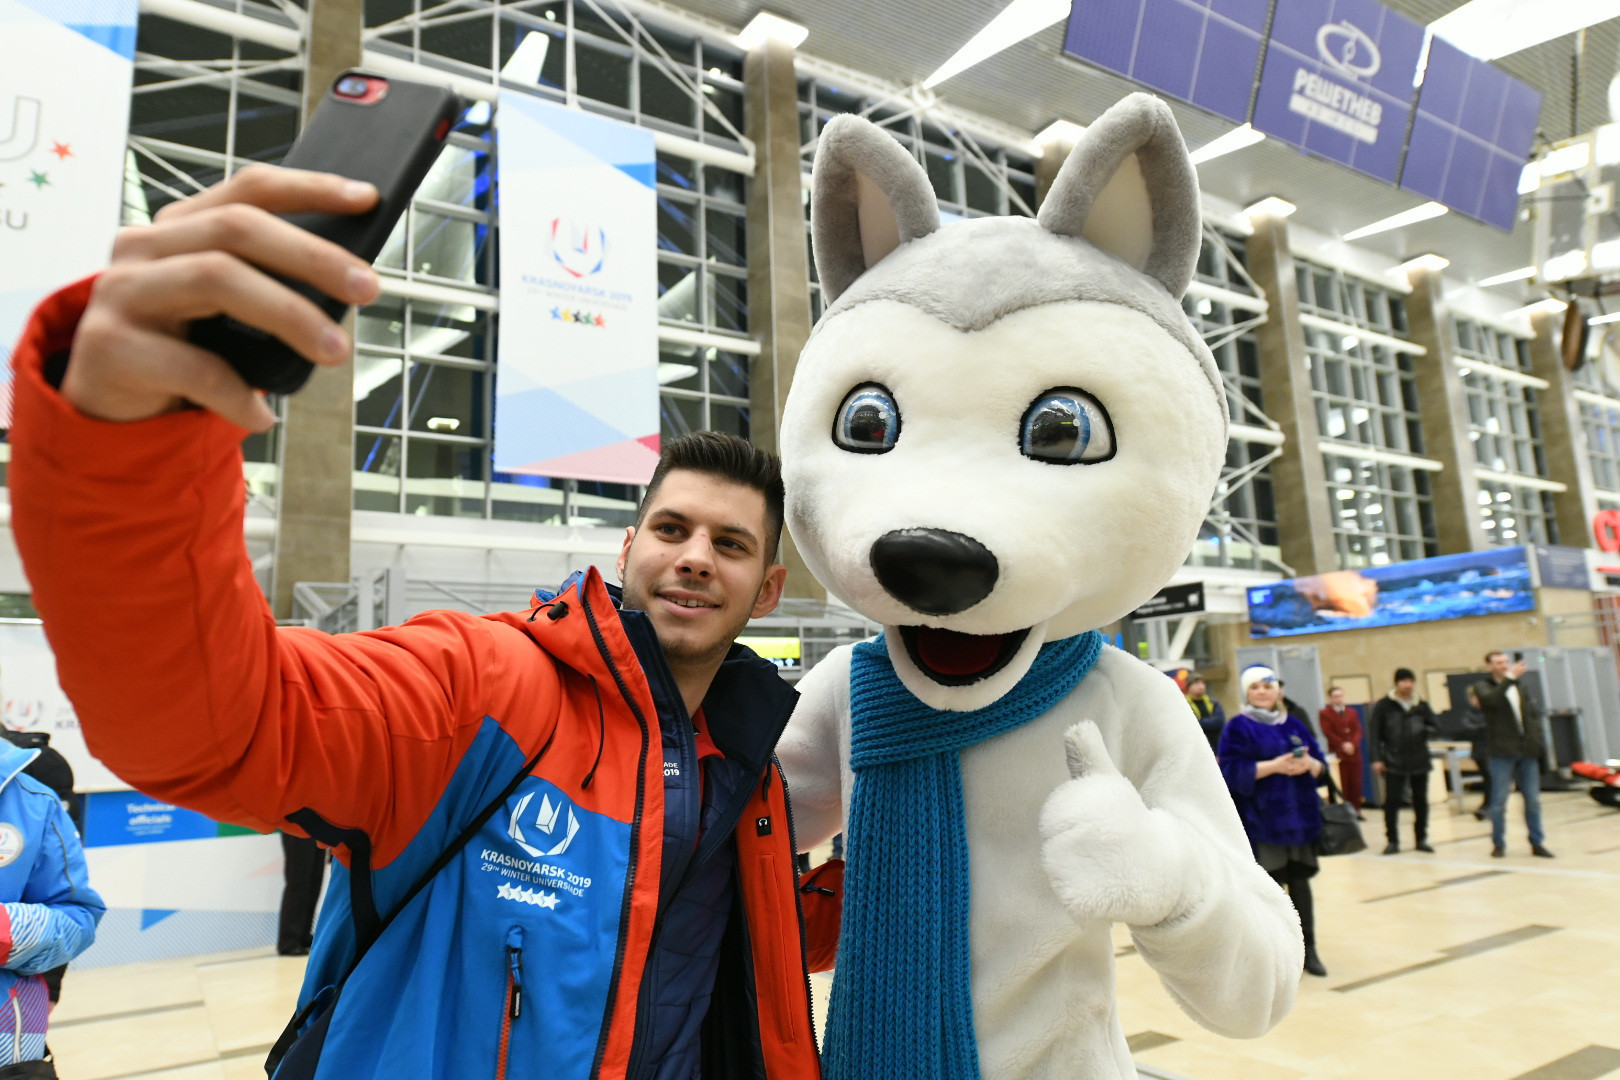 Russian team arrive at Universiade Village for Krasnoyarsk 2019